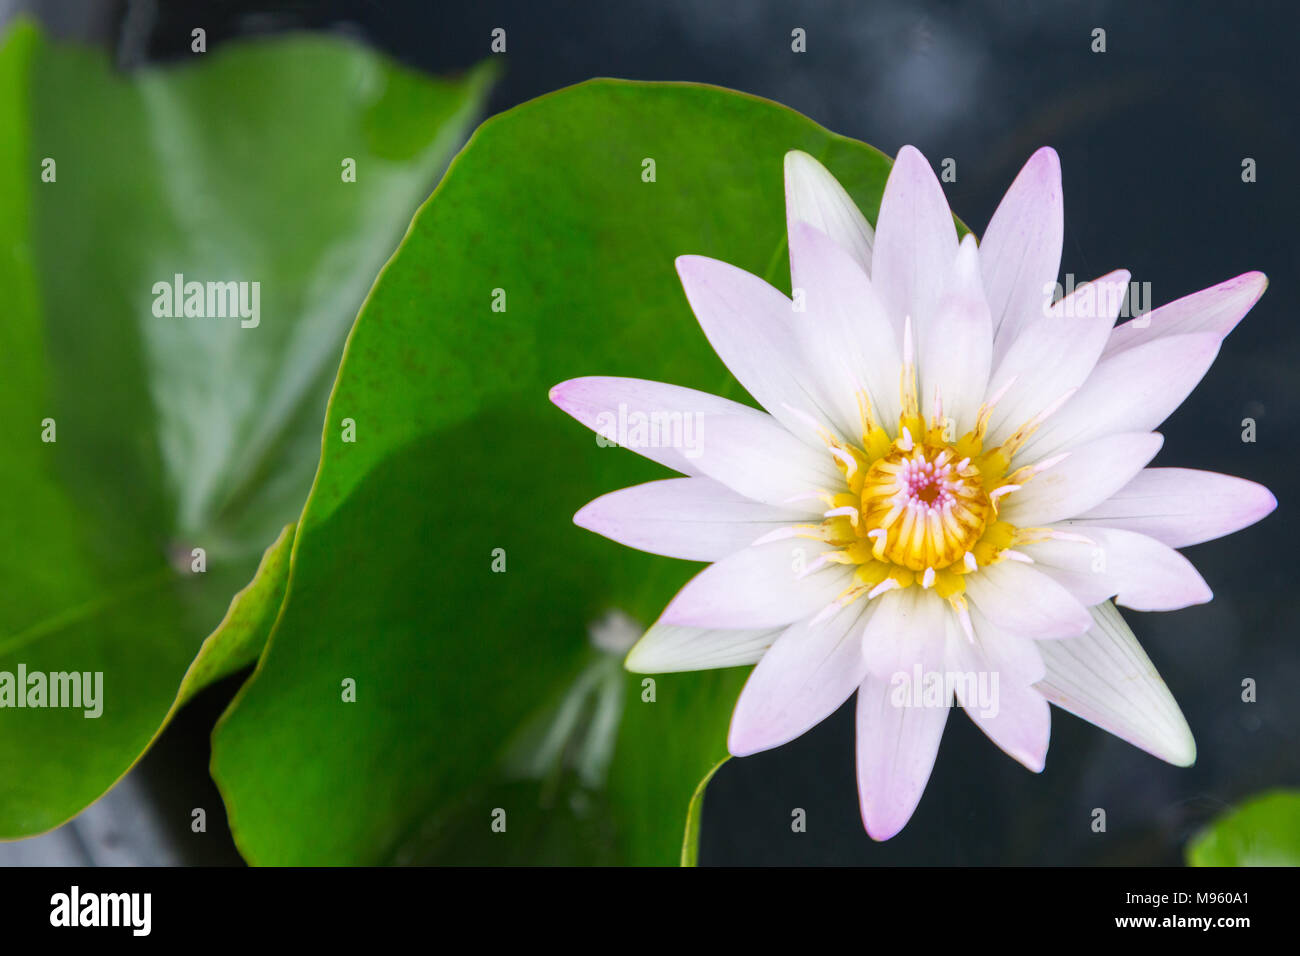 Lotus Flower Or Water Lily Flower Blooming With Lotus Leaves